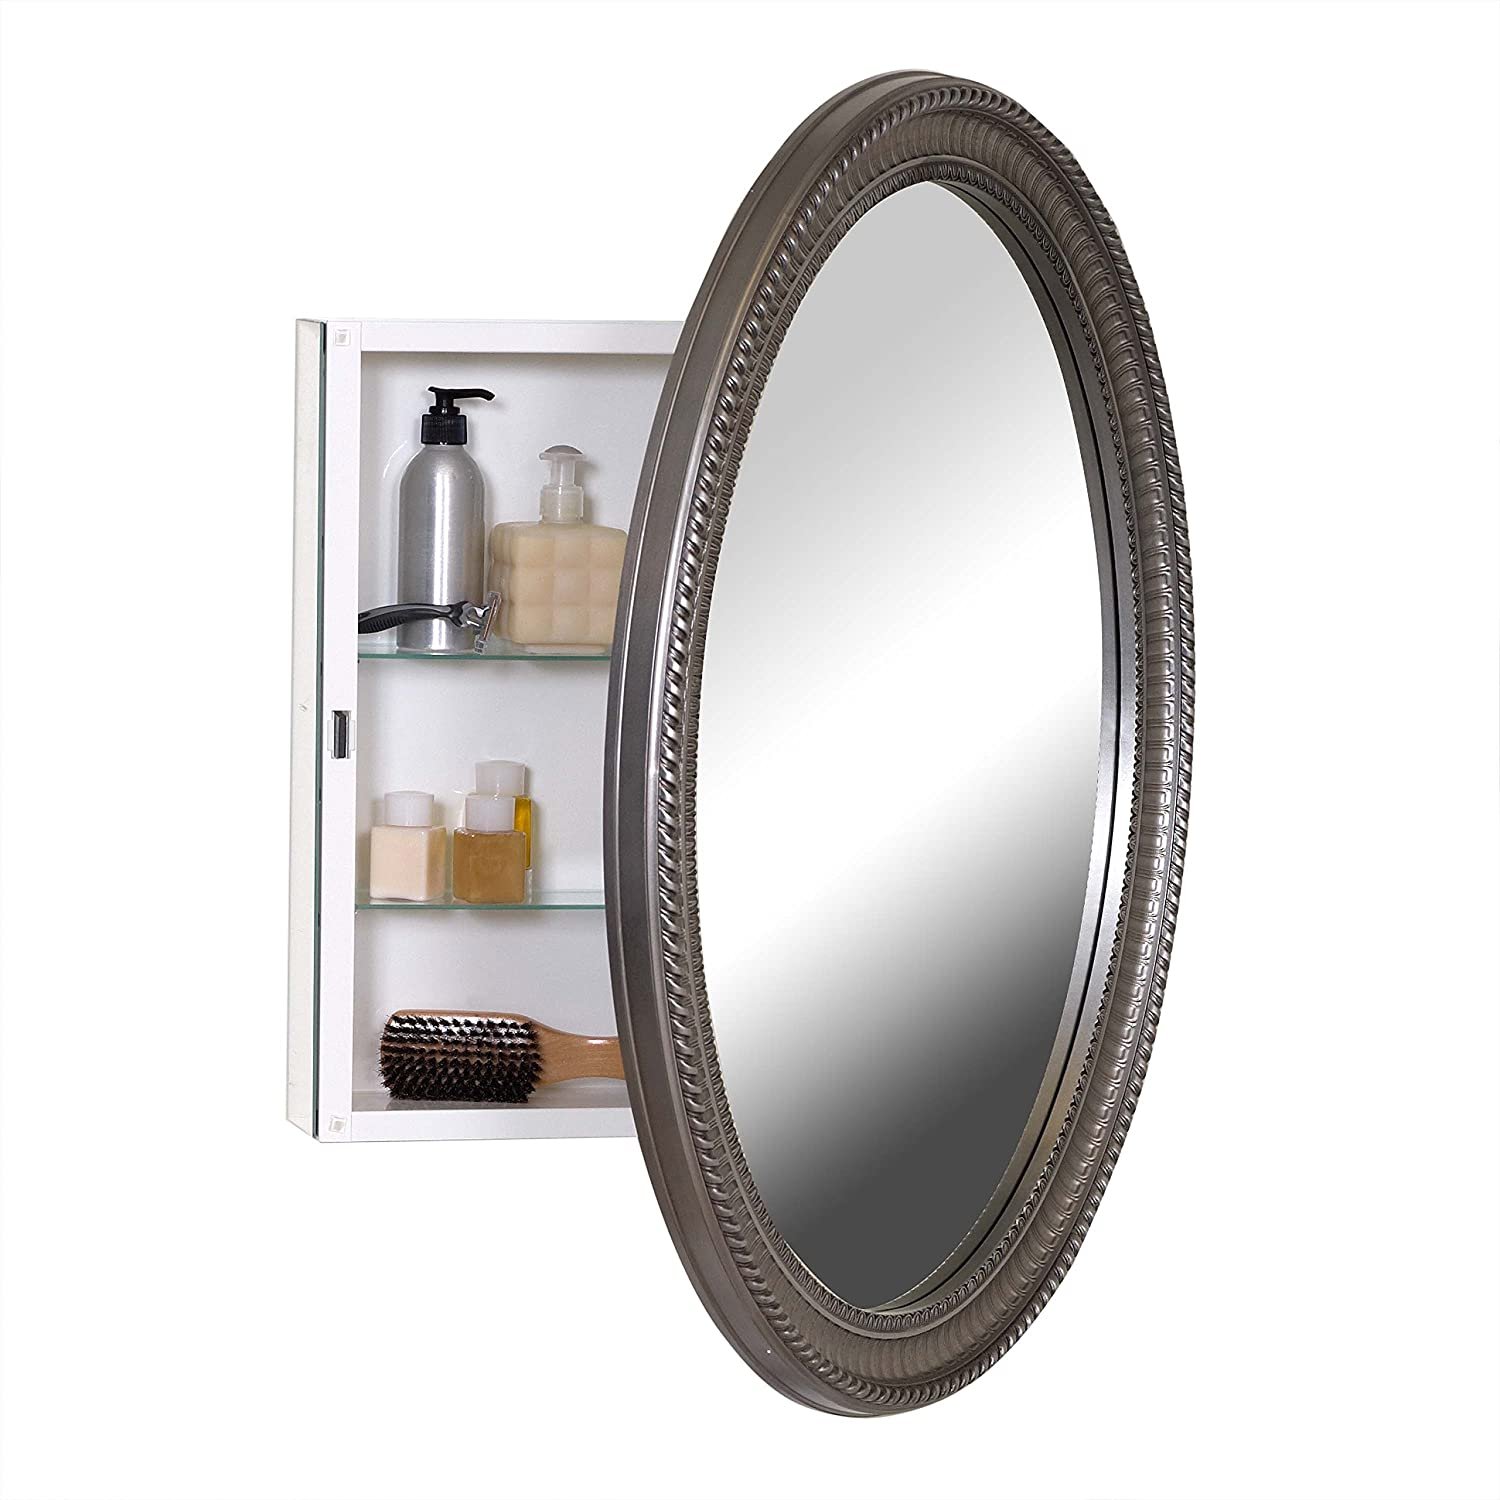 Oval medicine cabinet surface mount mirrored medicine cabinet surface mount medicine cabinets Oval bathroom mirror cabinet